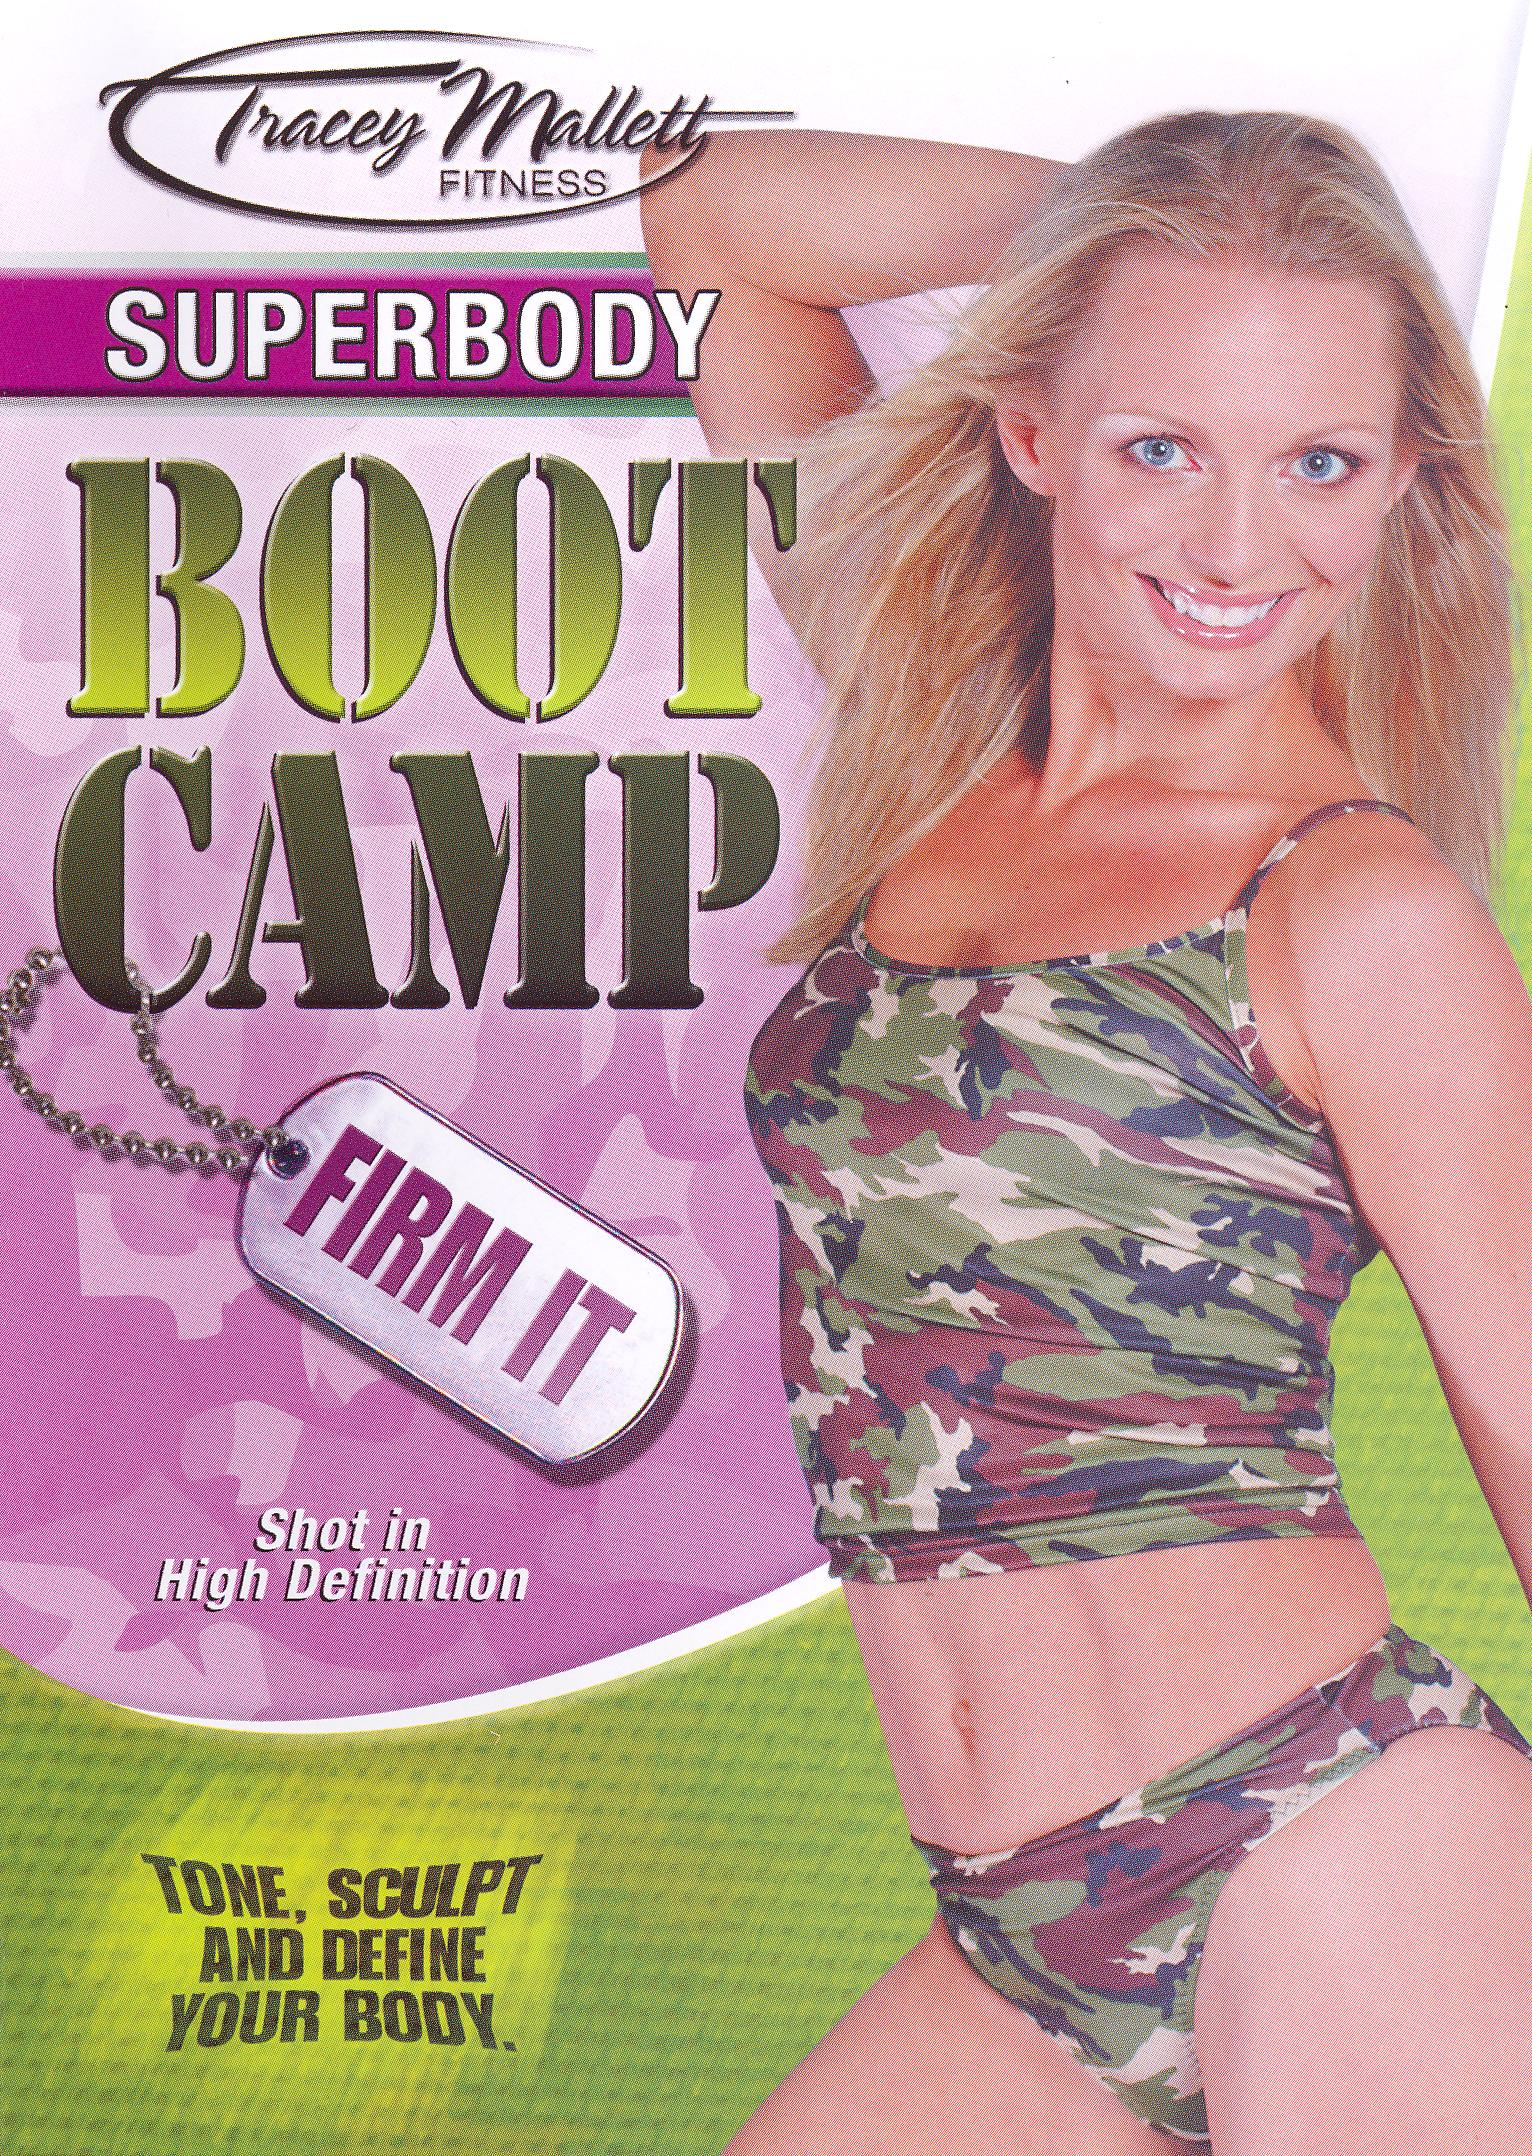 Superbody Boot Camp: Firm It